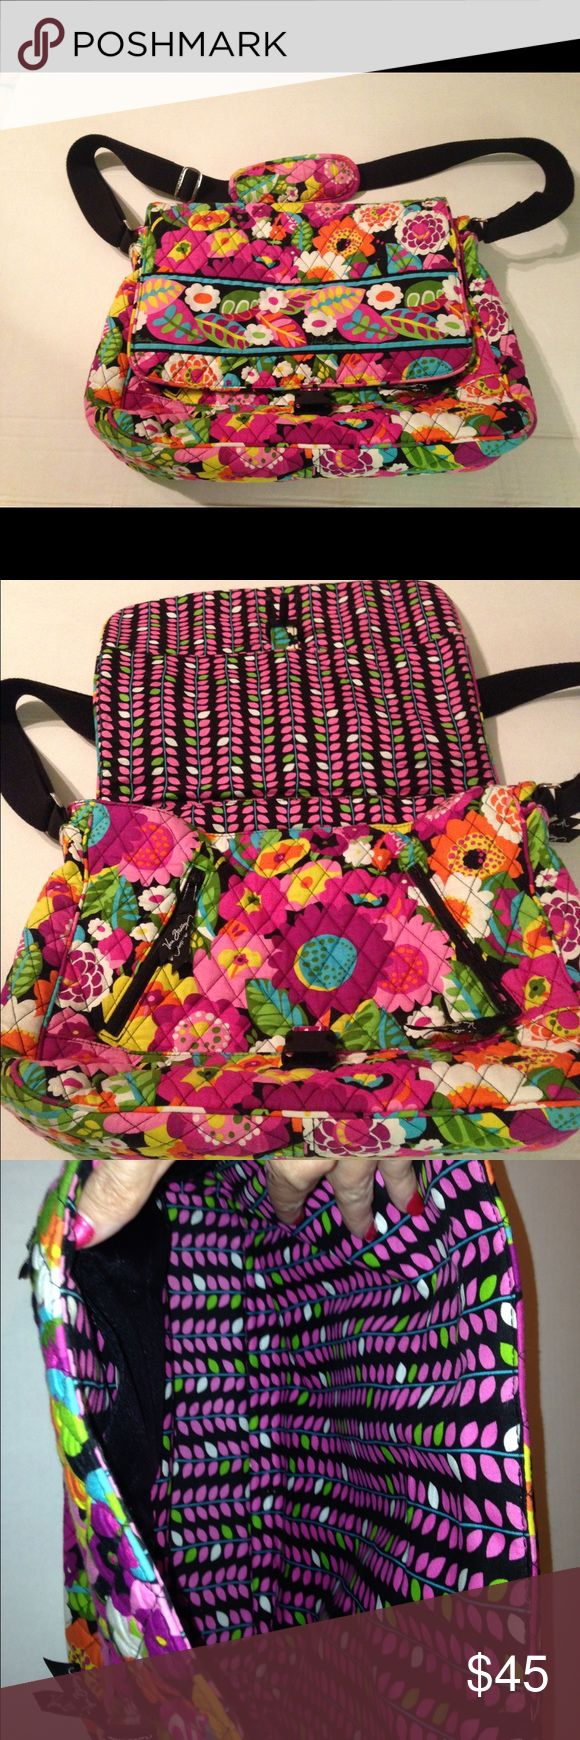 Vera Bradley Laptop bag EUC. No flaws, stains or rips. Open to offers. Vera Bradley Bags Laptop Bags